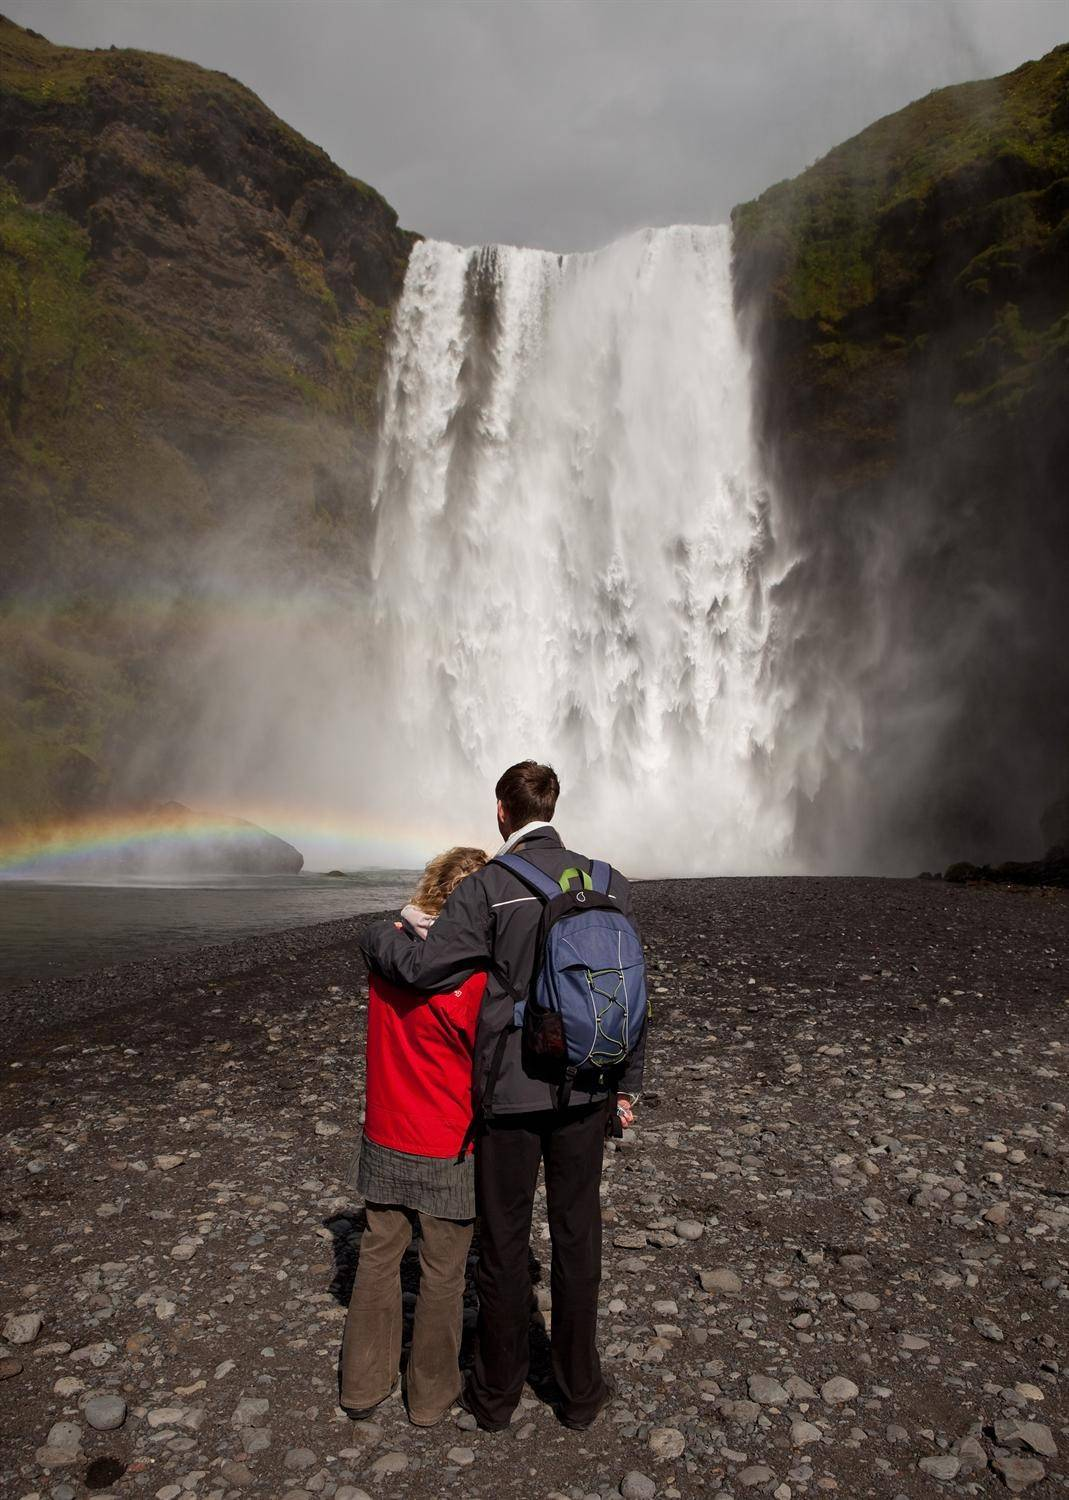 The natural beauty of Iceland is one of the reasons it's a hot tourist destination this year.